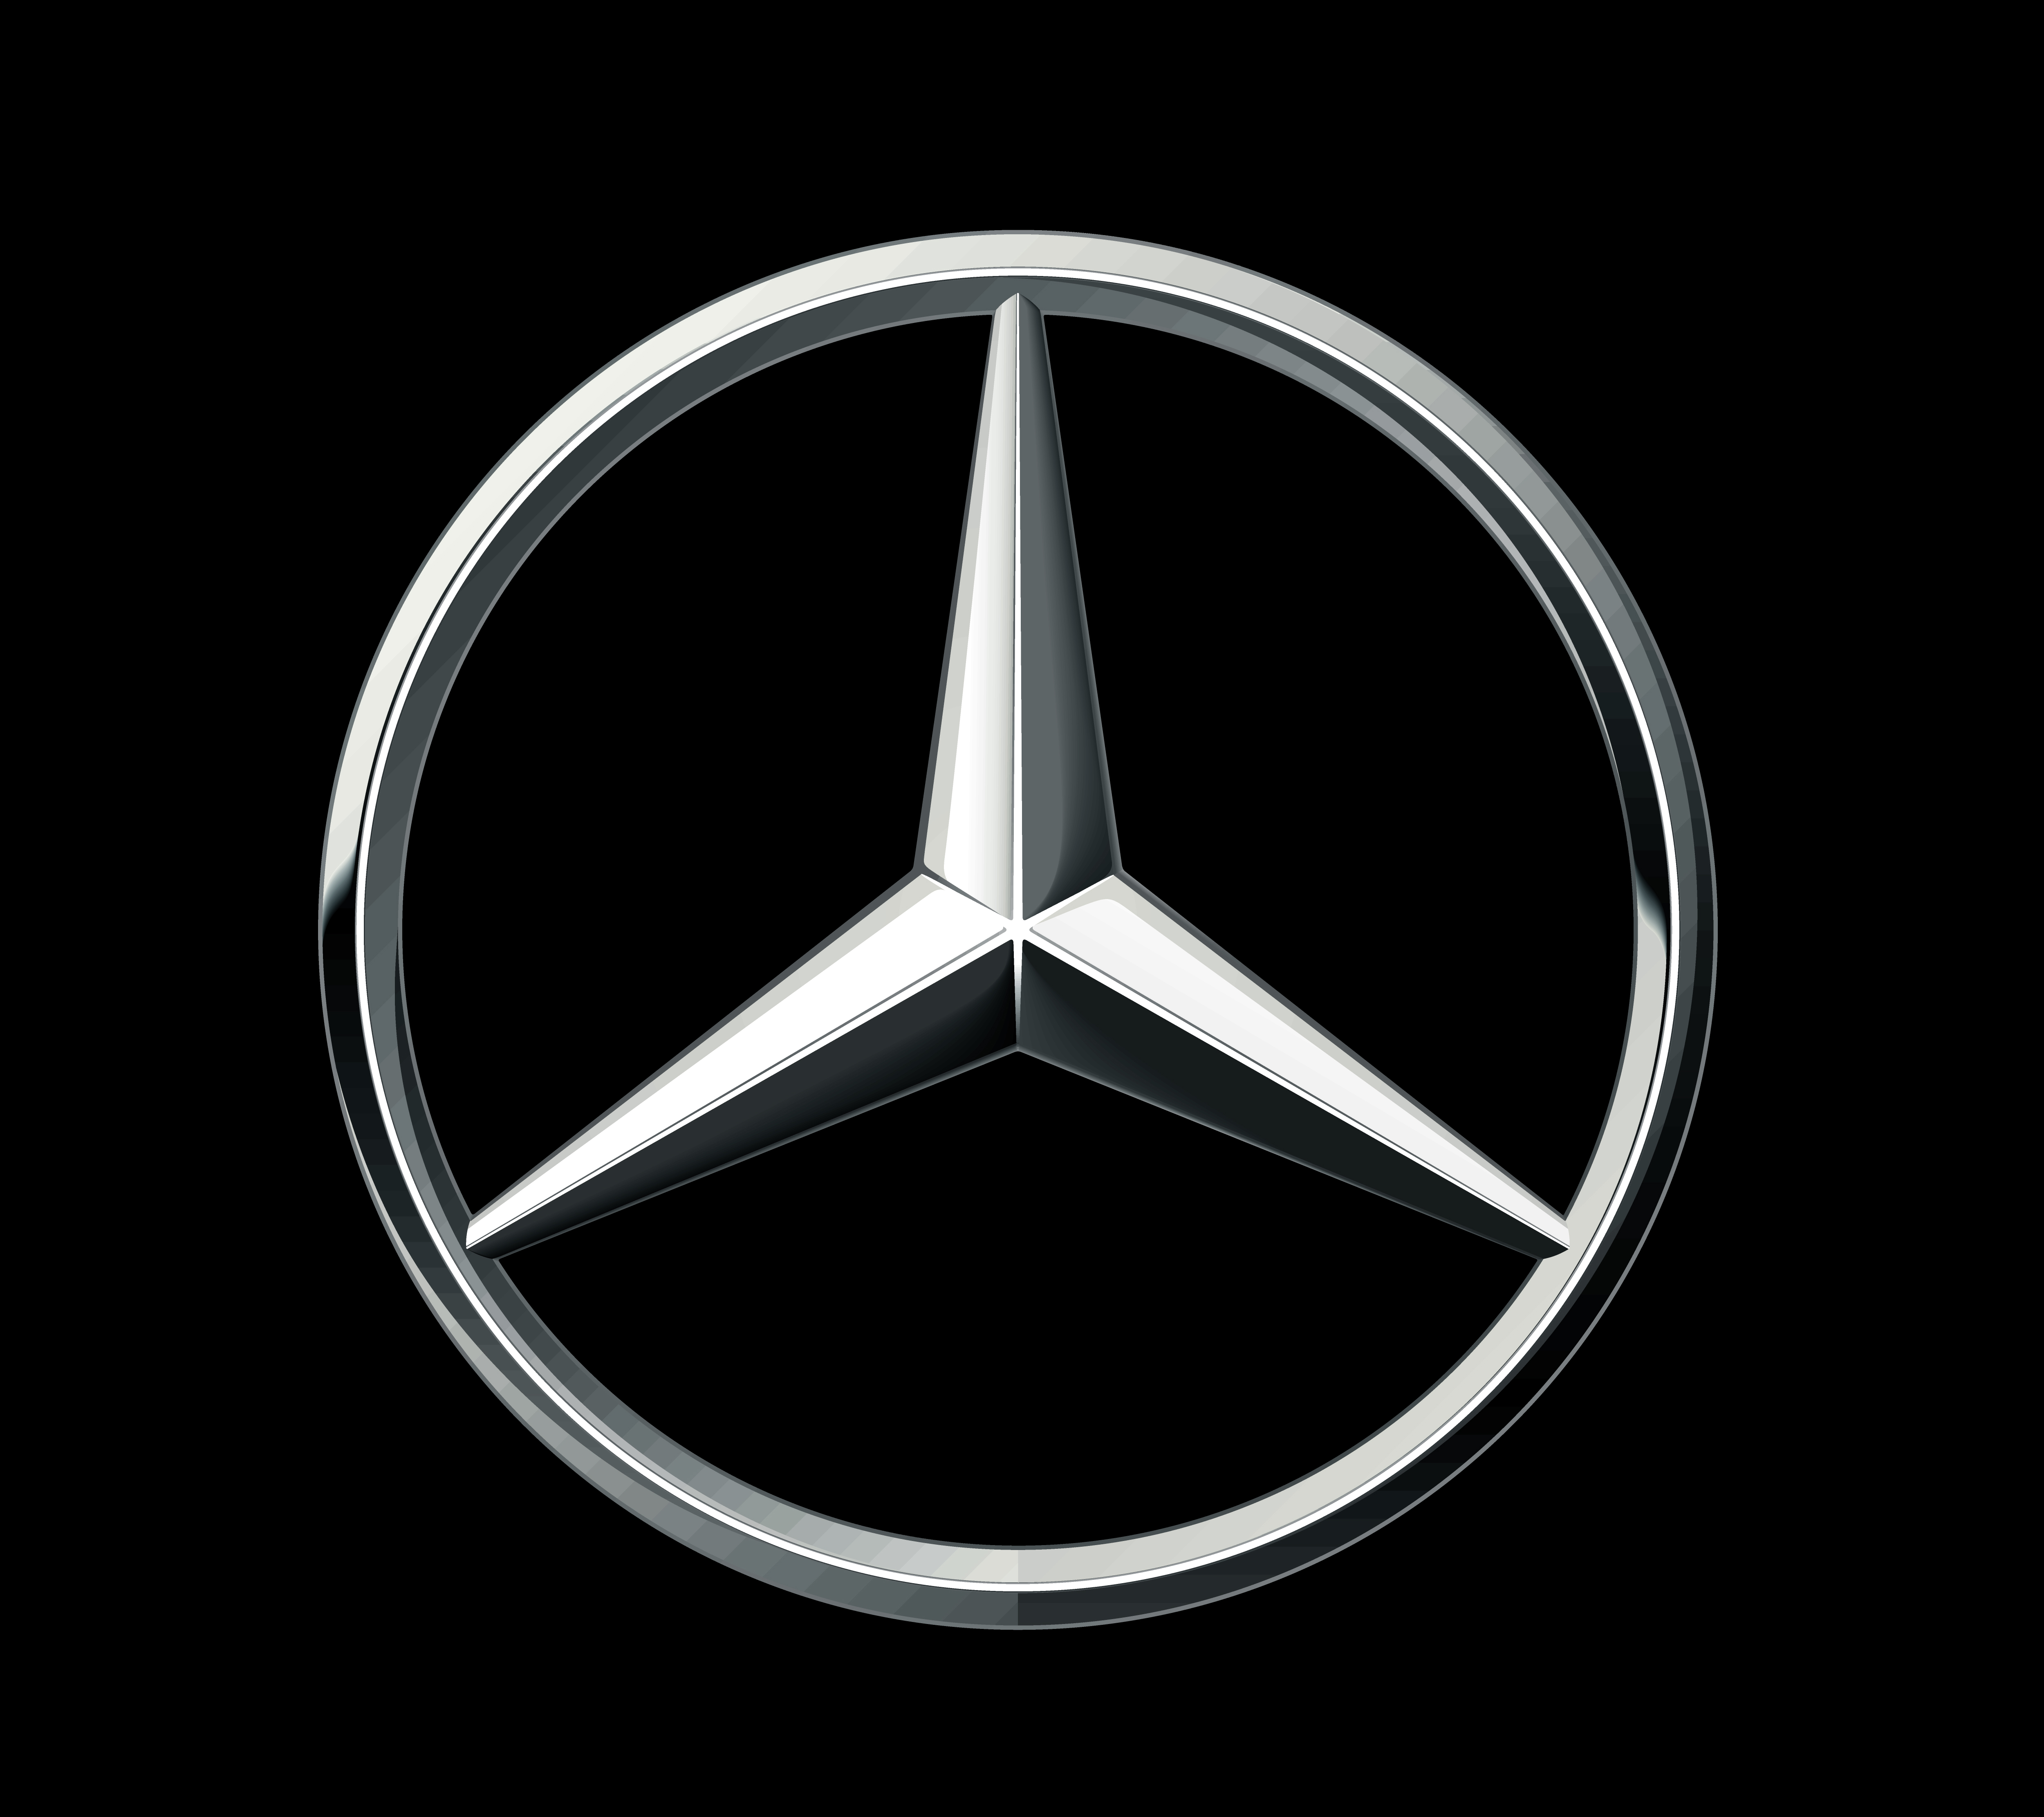 Mercedes Logo, Mercedes-Benz Car Symbol Meaning and History | Car ...